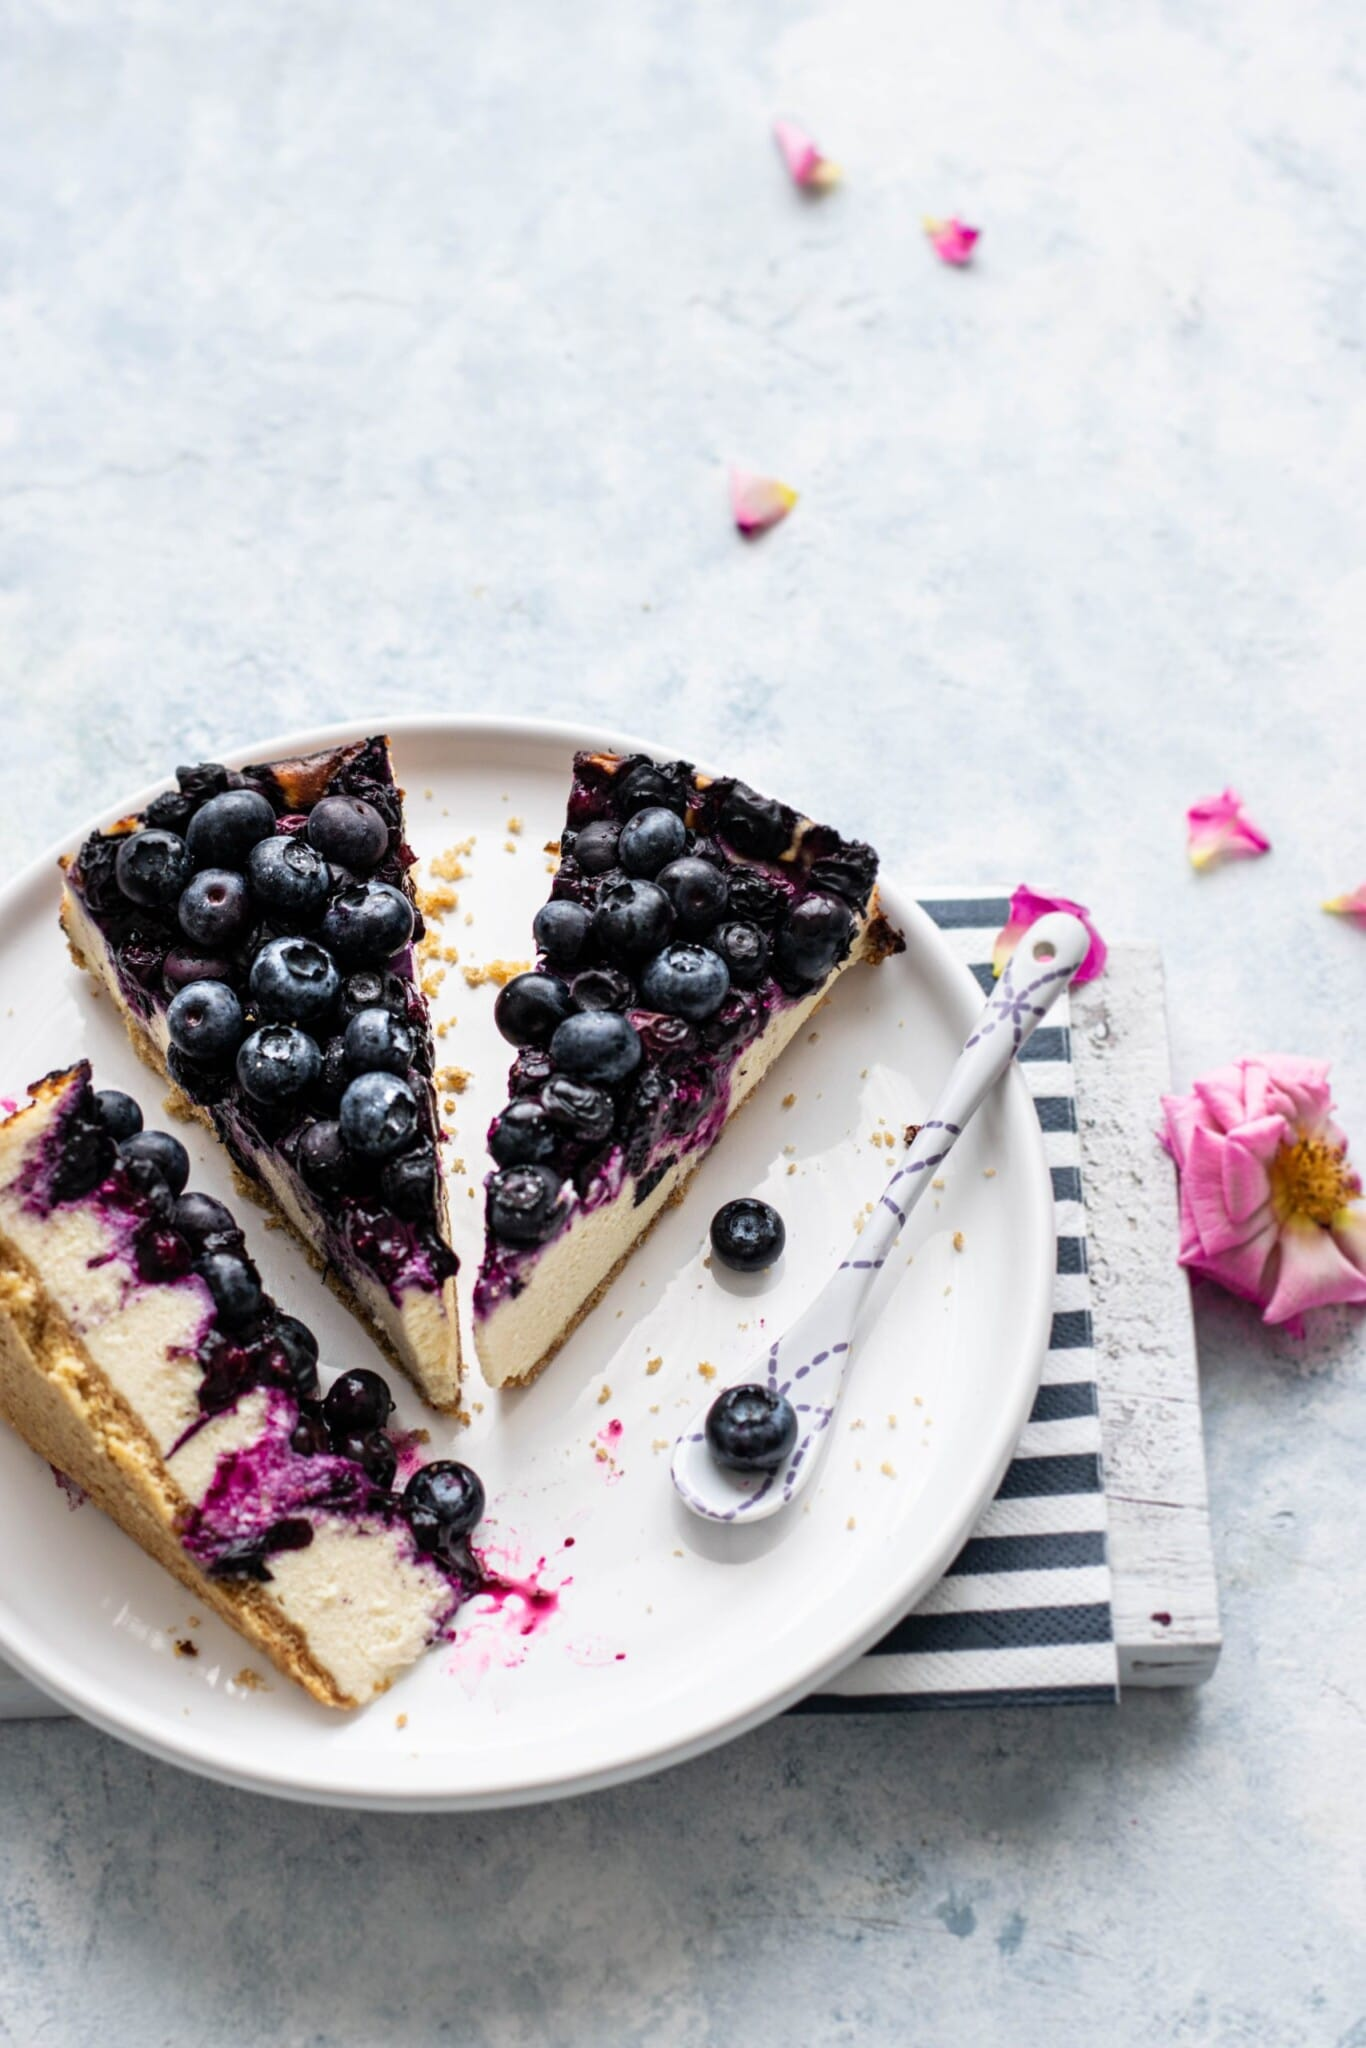 Super Simple Blueberry Cheese Cake